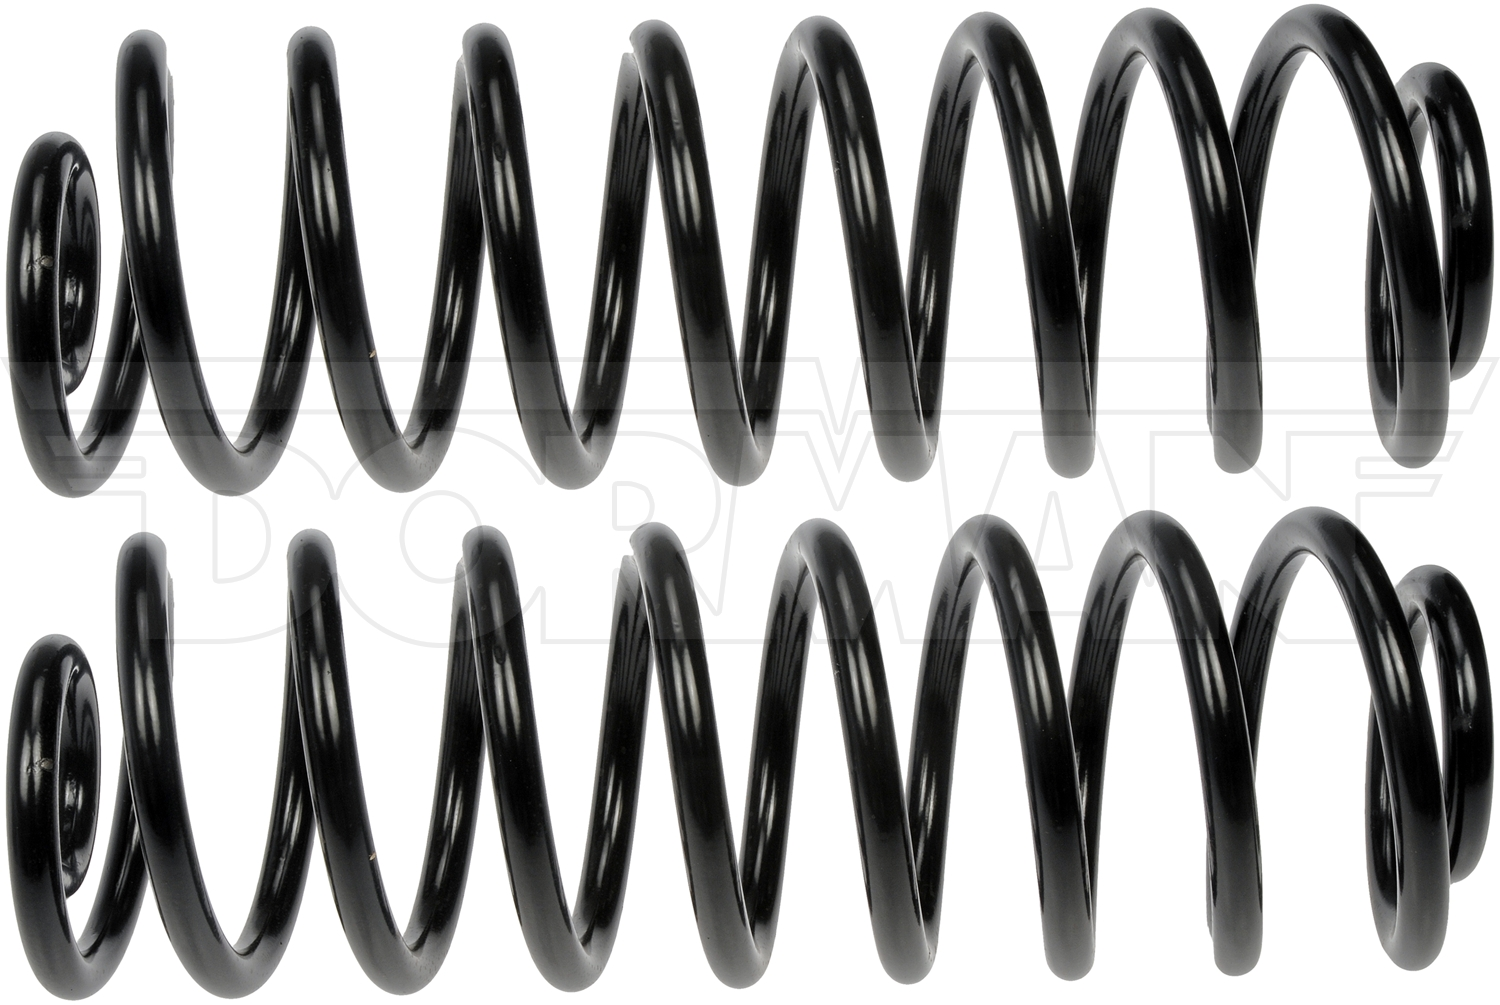 hight resolution of dorman oe solutions 949 513 air spring to coil spring conversion kit oe solutions tm oe replacement with coil springs only walmart canada